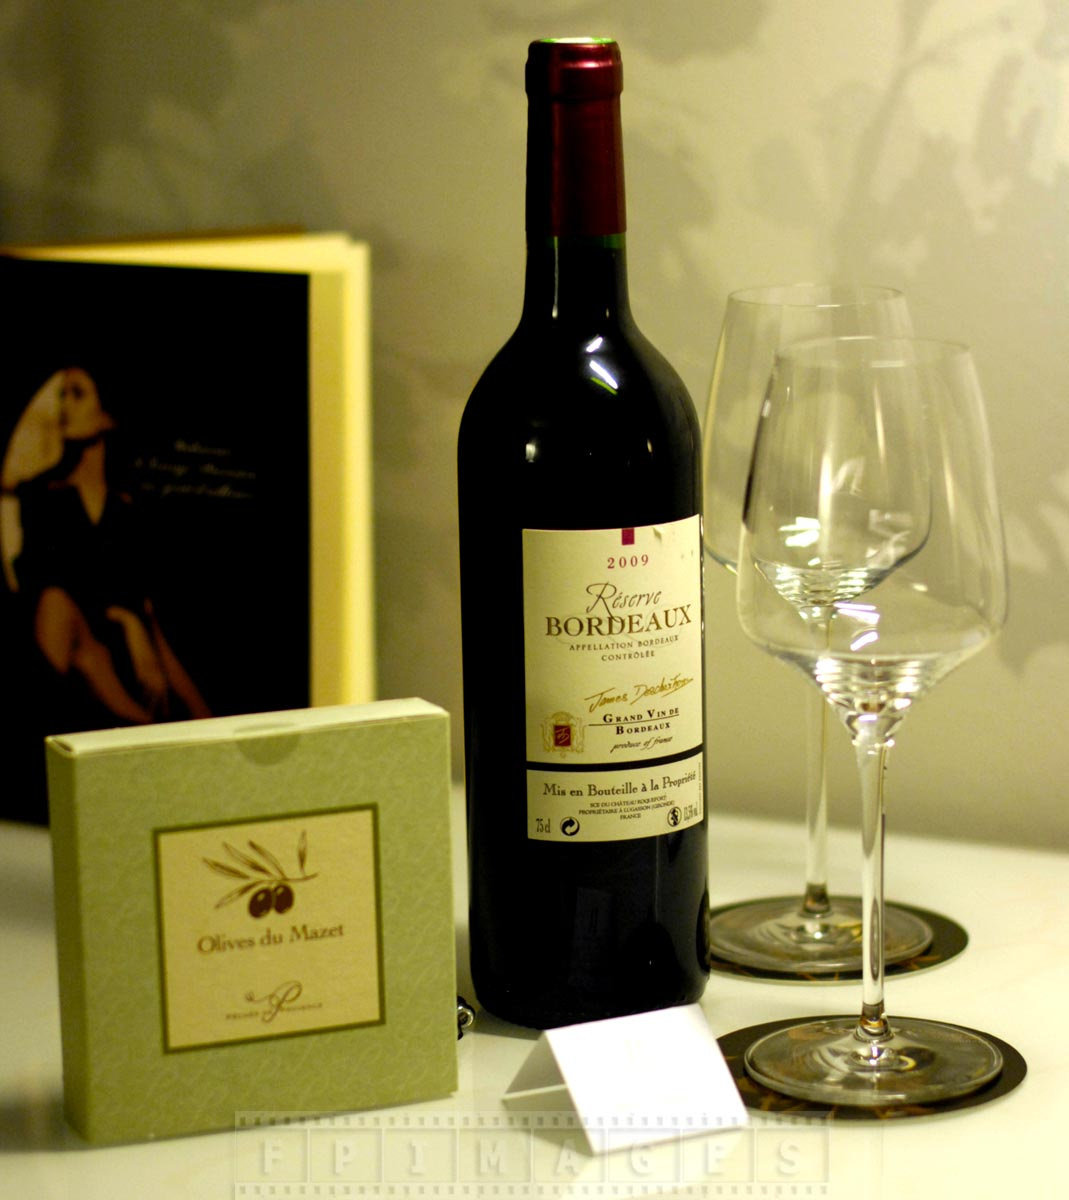 Romantic hotels welcome guests with tasteful gifts